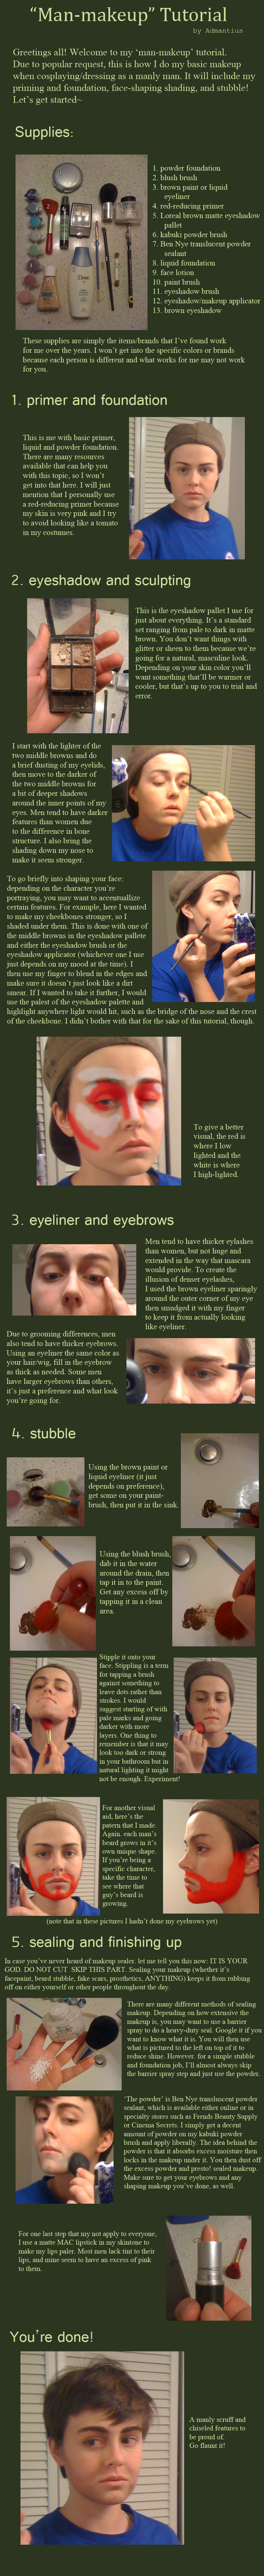 'Man-Makeup' and Stubble Tutorial by Admantius